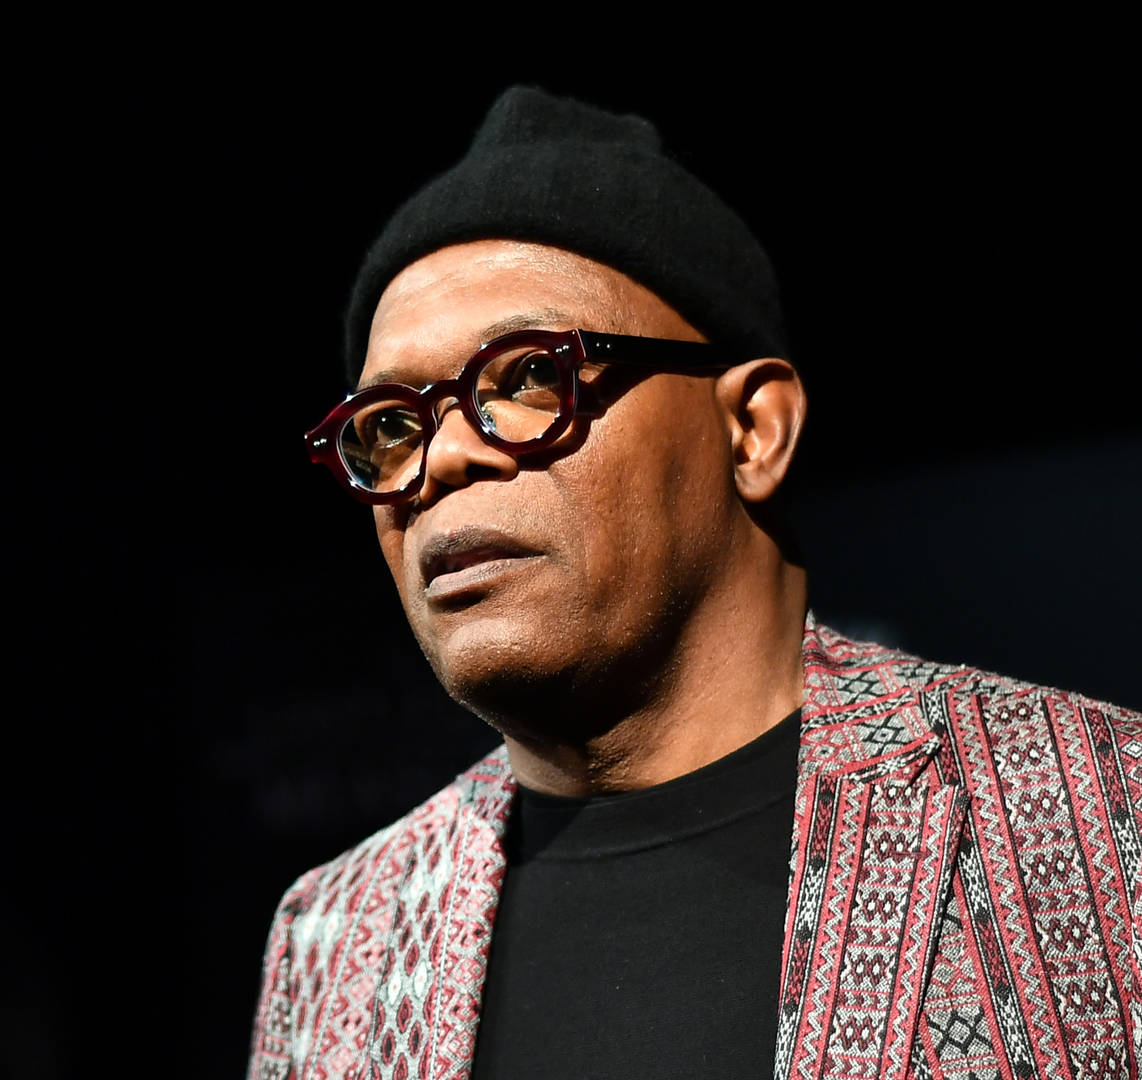 Samuel L. Jackson Urges People To 'Stay The F**k At Home'